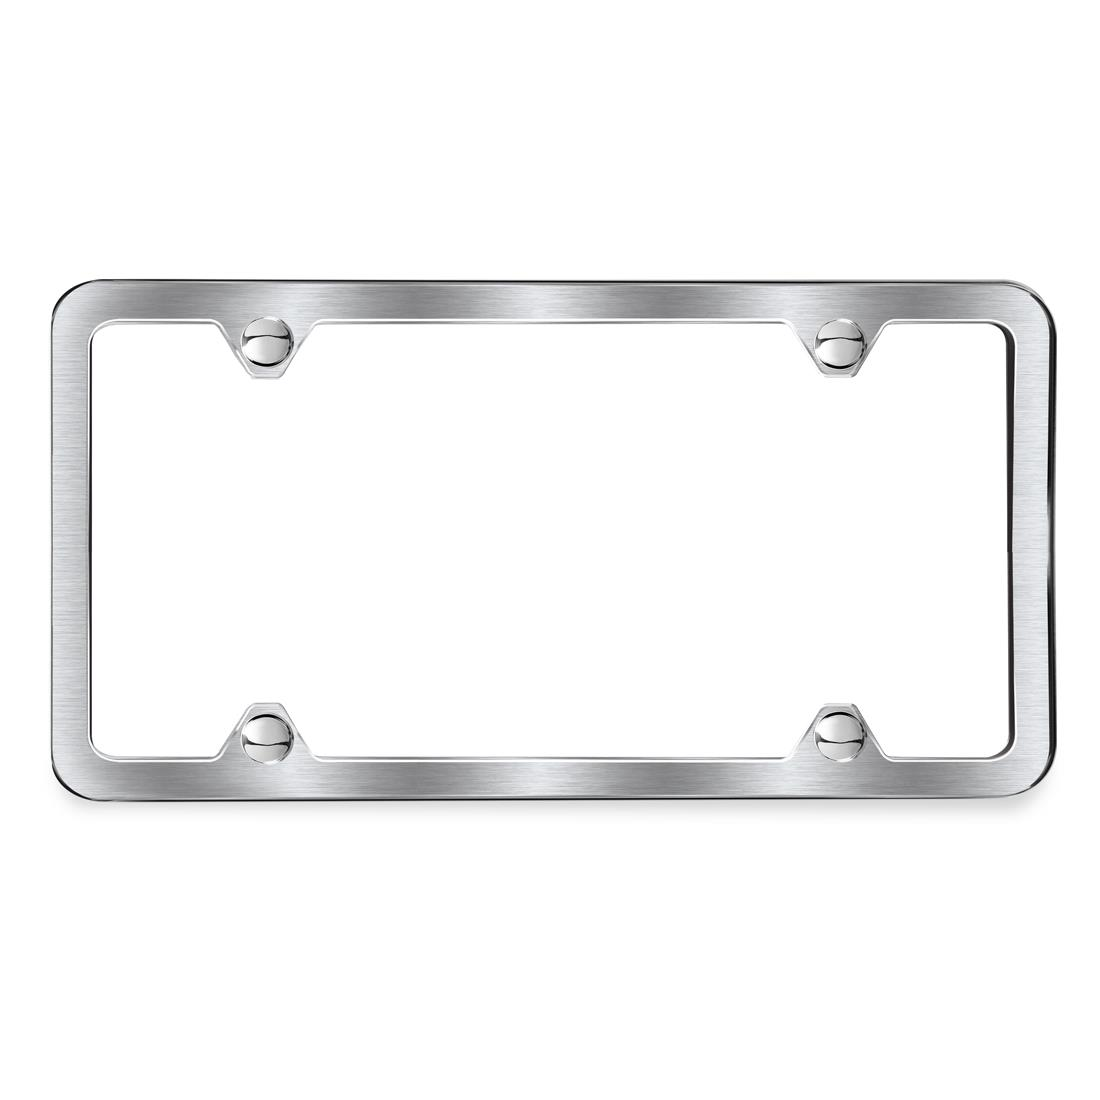 Brushed slimline license plate frame